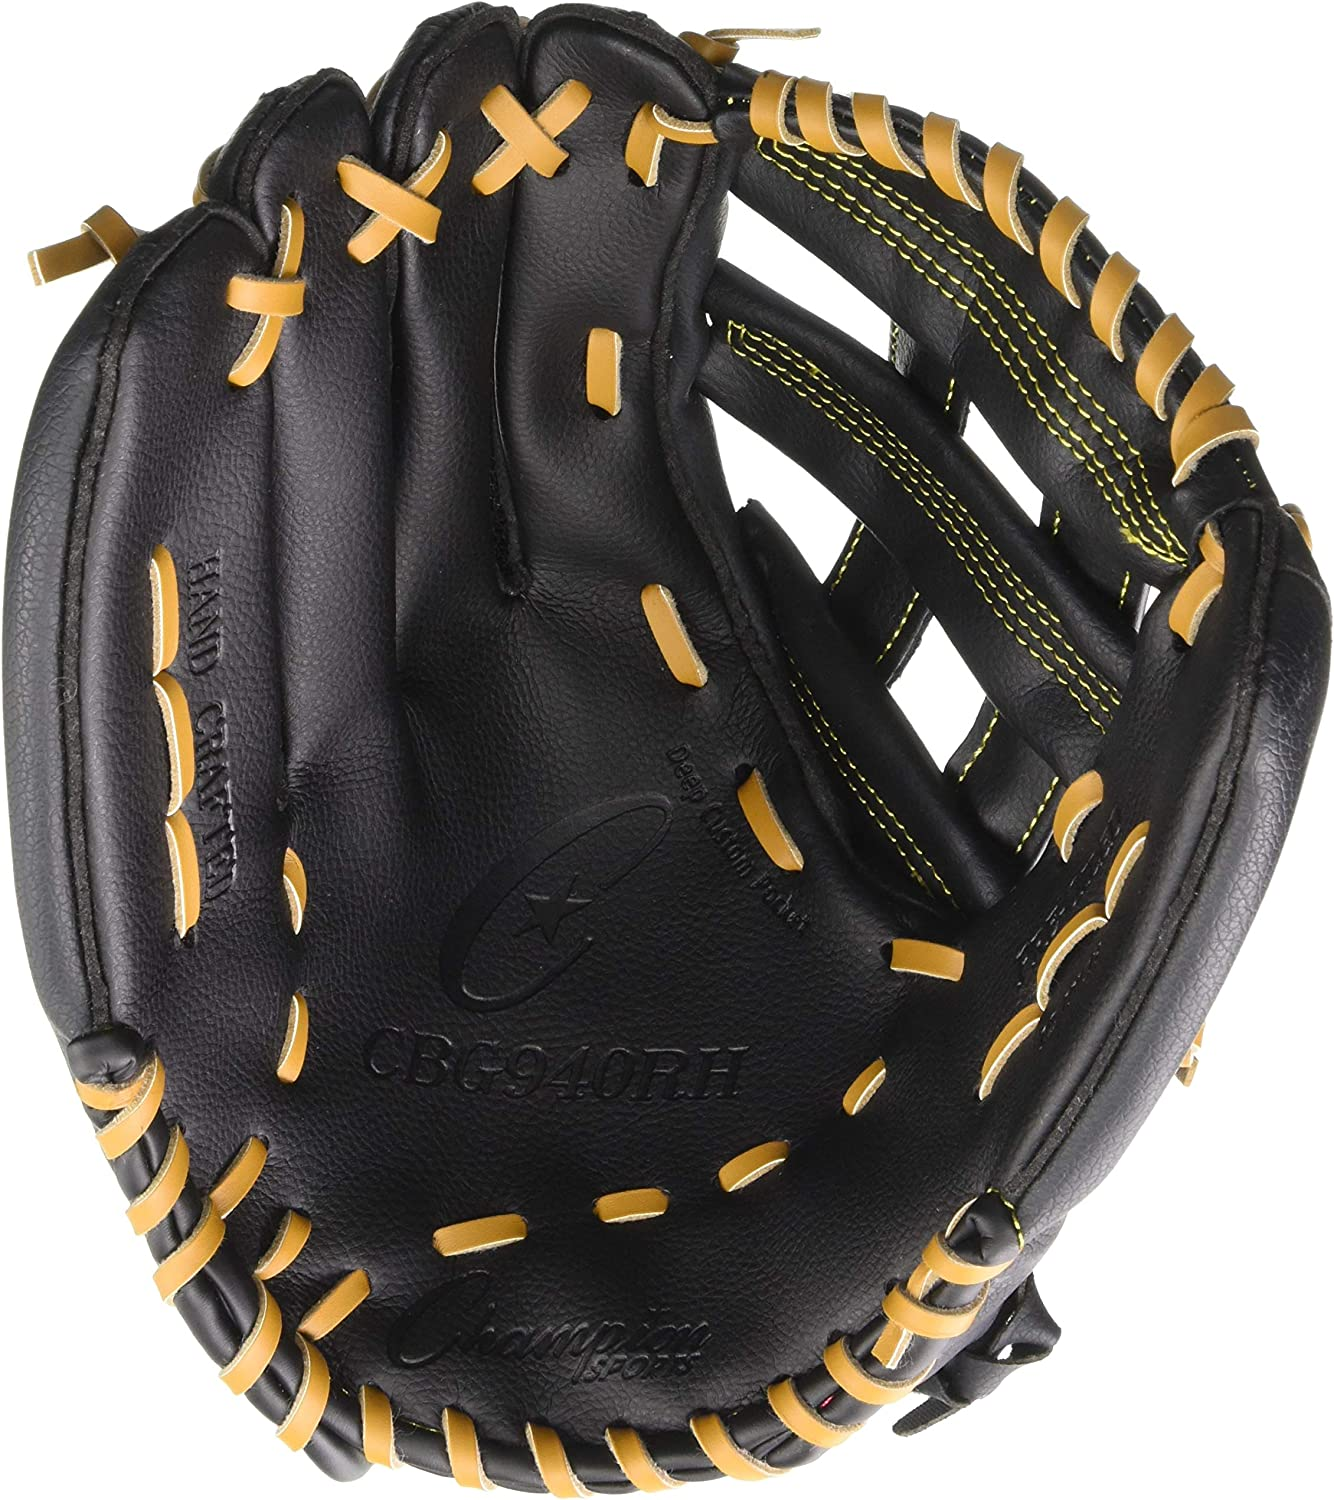 Champion Sports Physical Education Glove